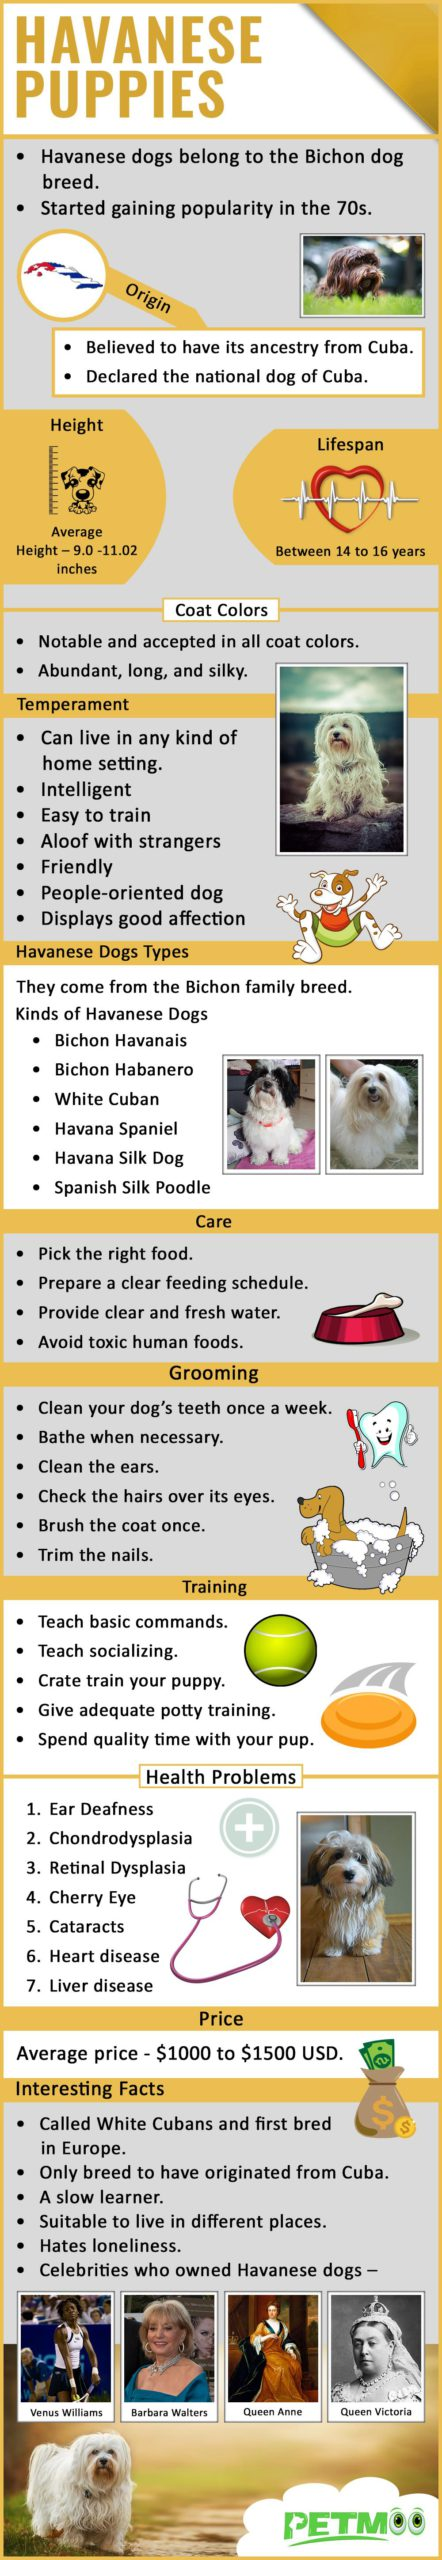 Havanese Puppies Infographic